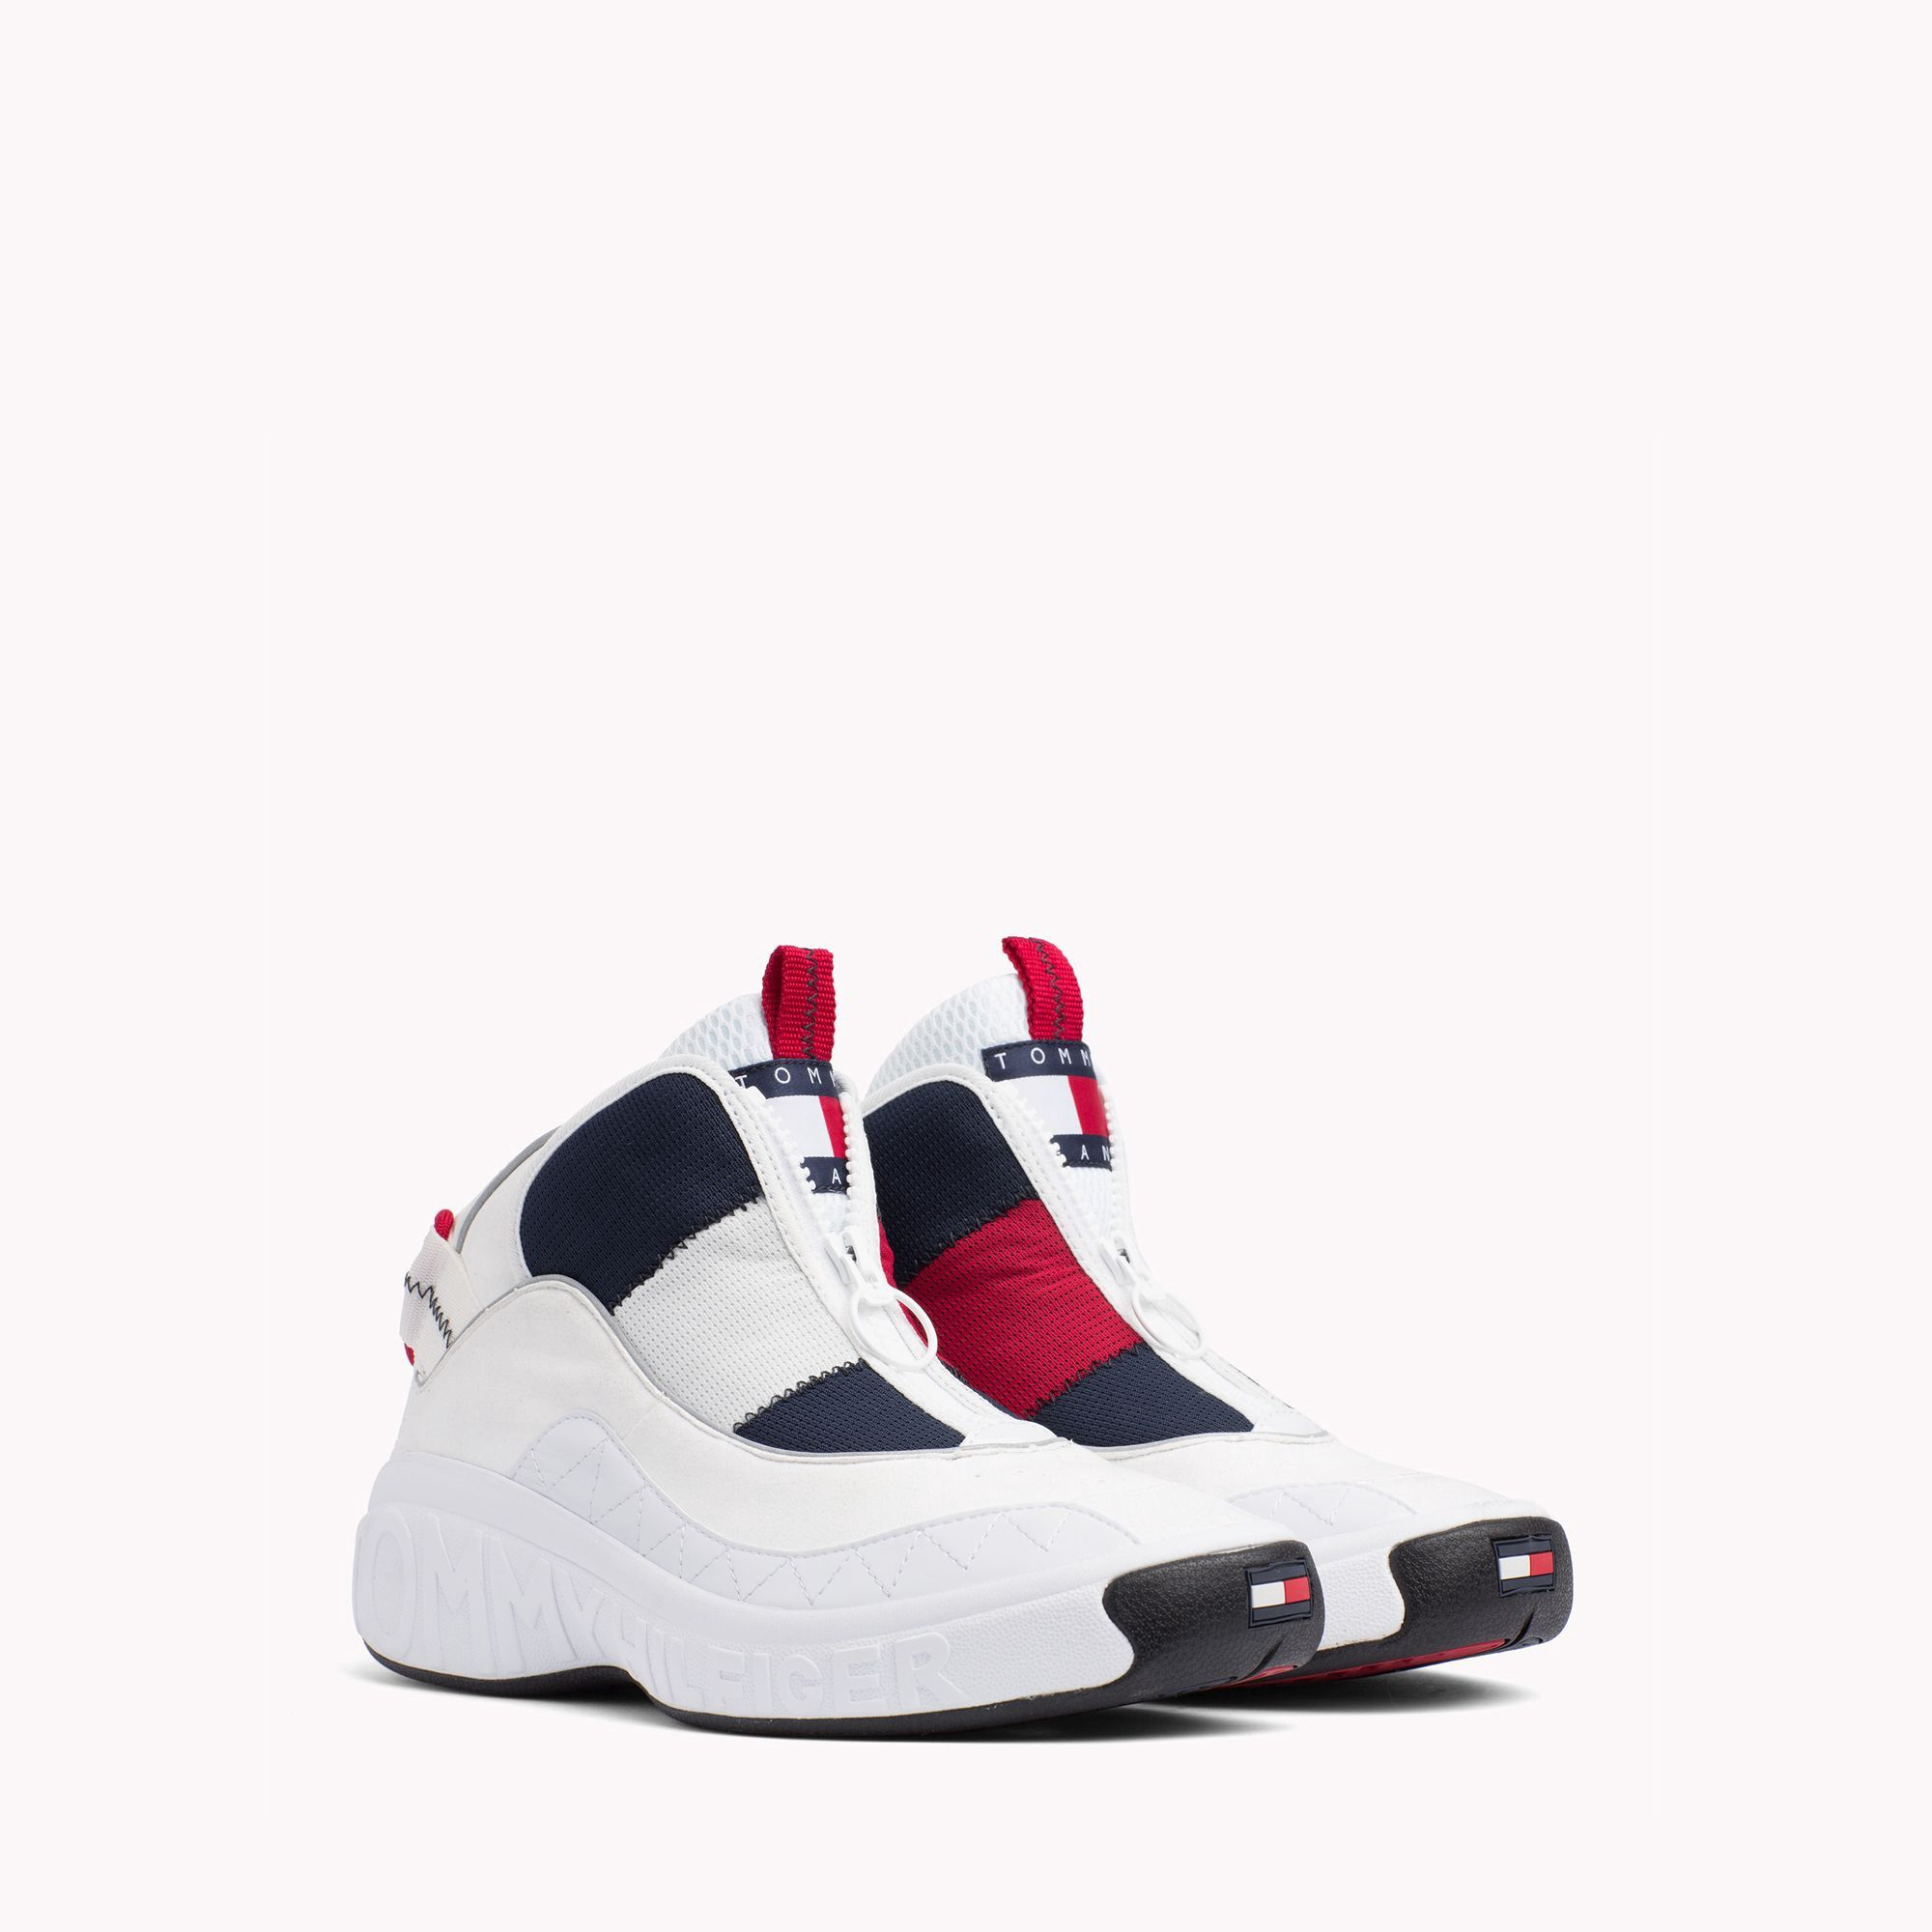 0ffc54aaf Tommy Hilfiger Retro Icon Sneaker - White Blue Red 11.5